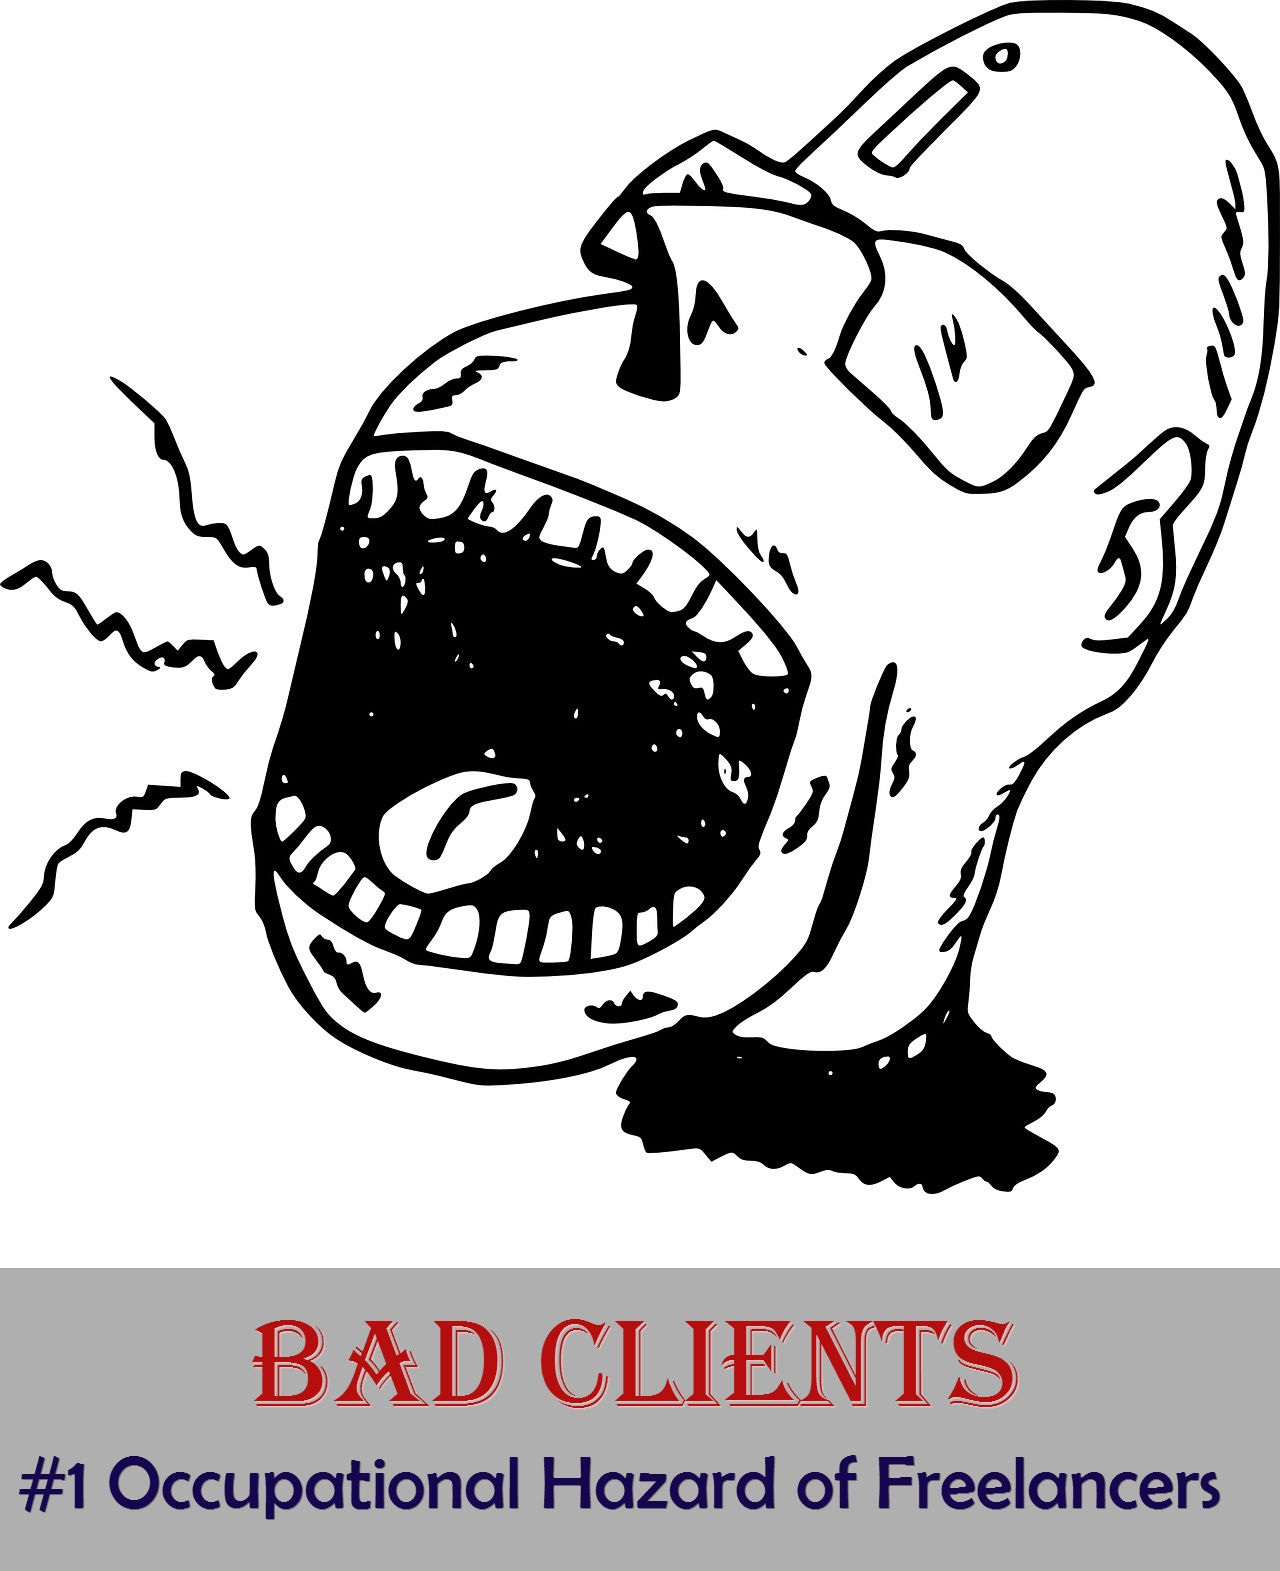 Bad clients are the top occupational hazard of freelancers